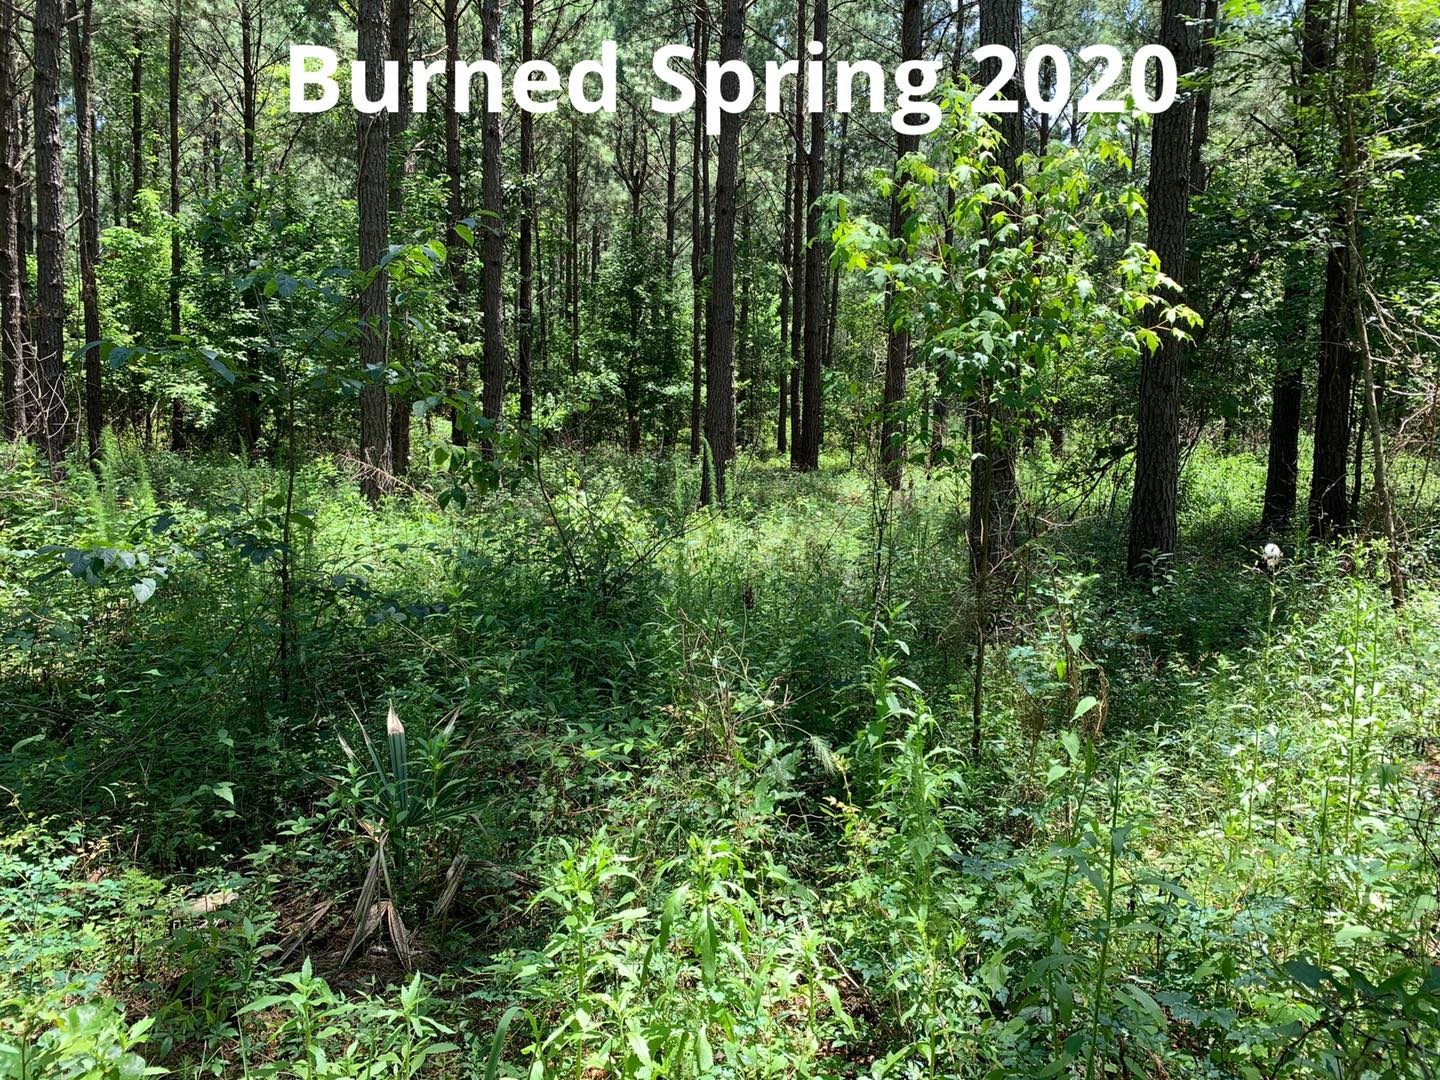 After Prescribed Fire